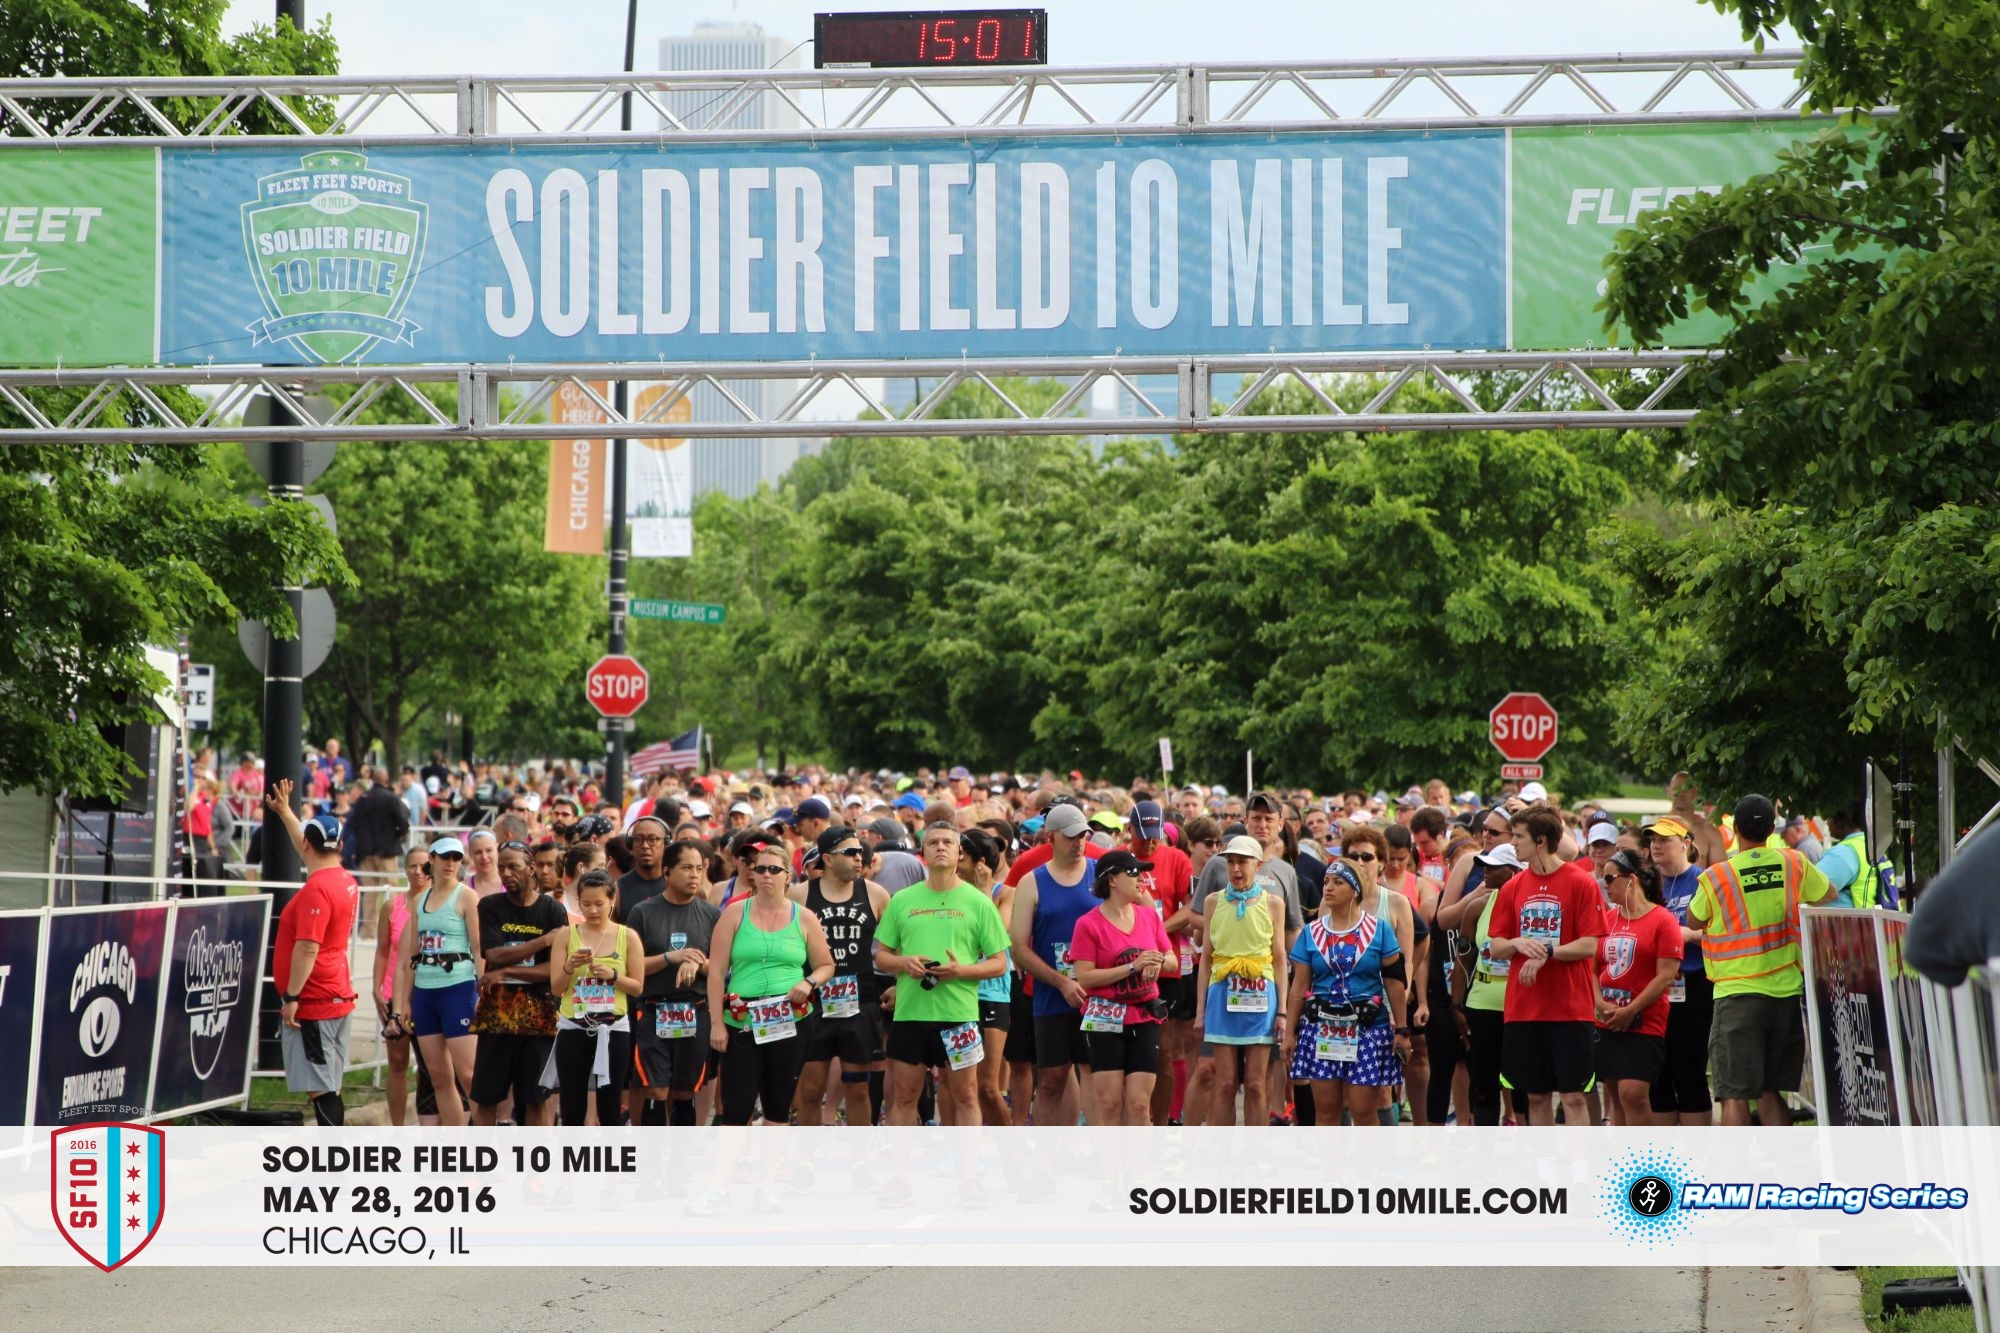 Soldier Field 10 Mile 2016